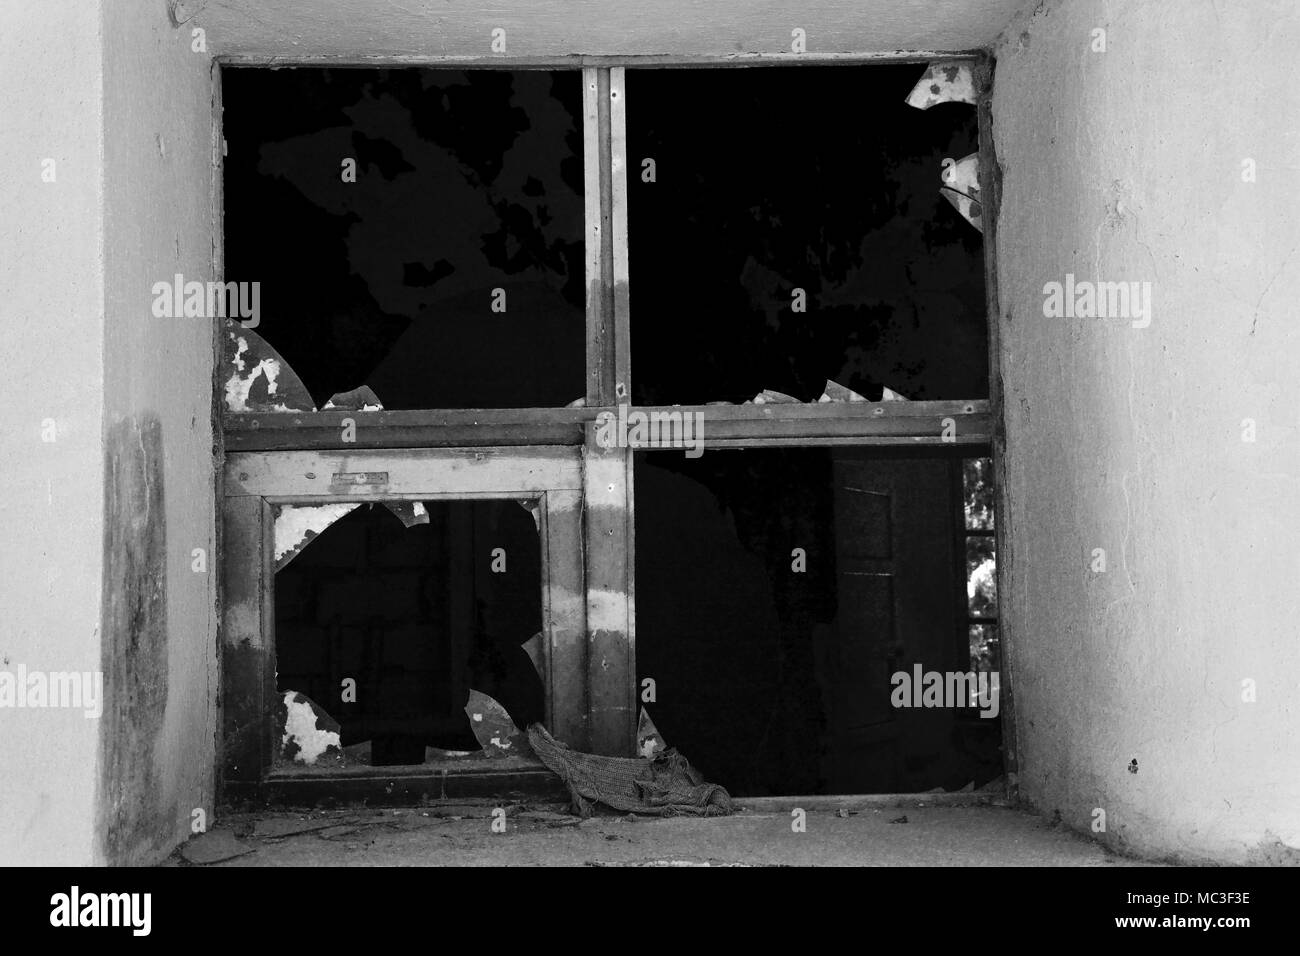 Shattered window in a run down, disused government building, Rhodes, Greece - Stock Image